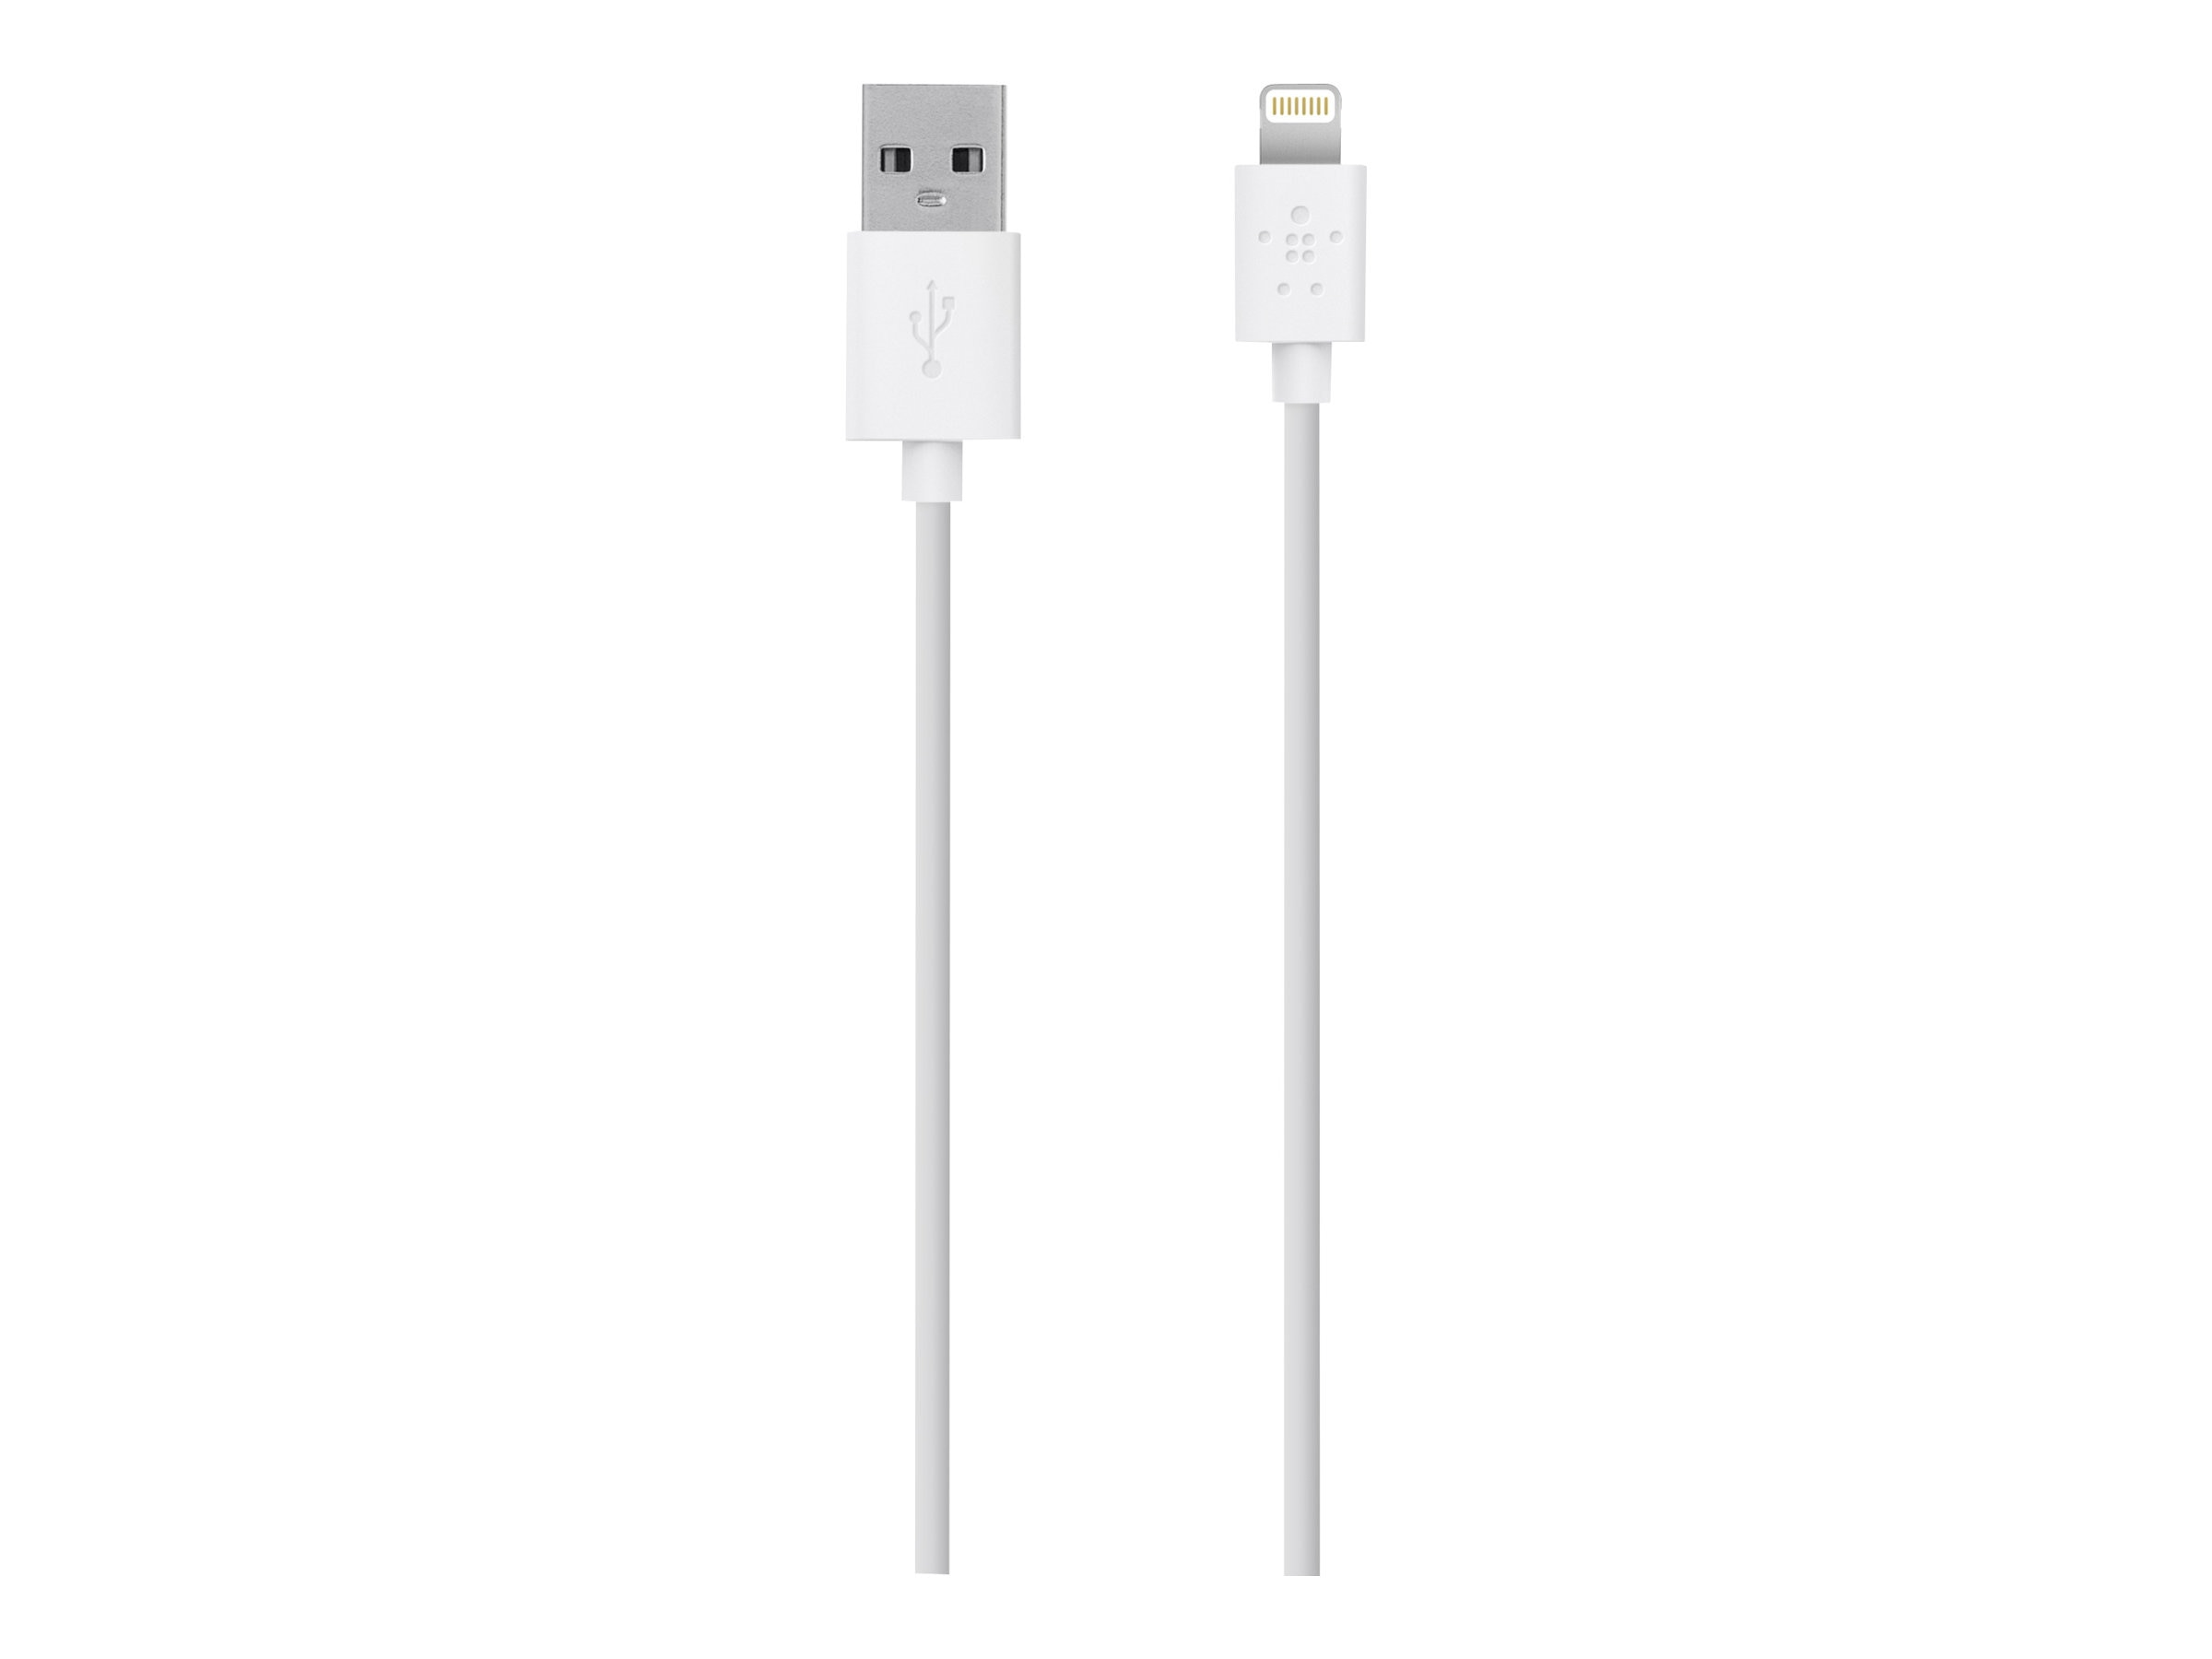 Belkin MIX IT Lightning Sync Charge cable, 1.2m, 4ft, White, F8J023BT04-WHT, 15622144, Cables